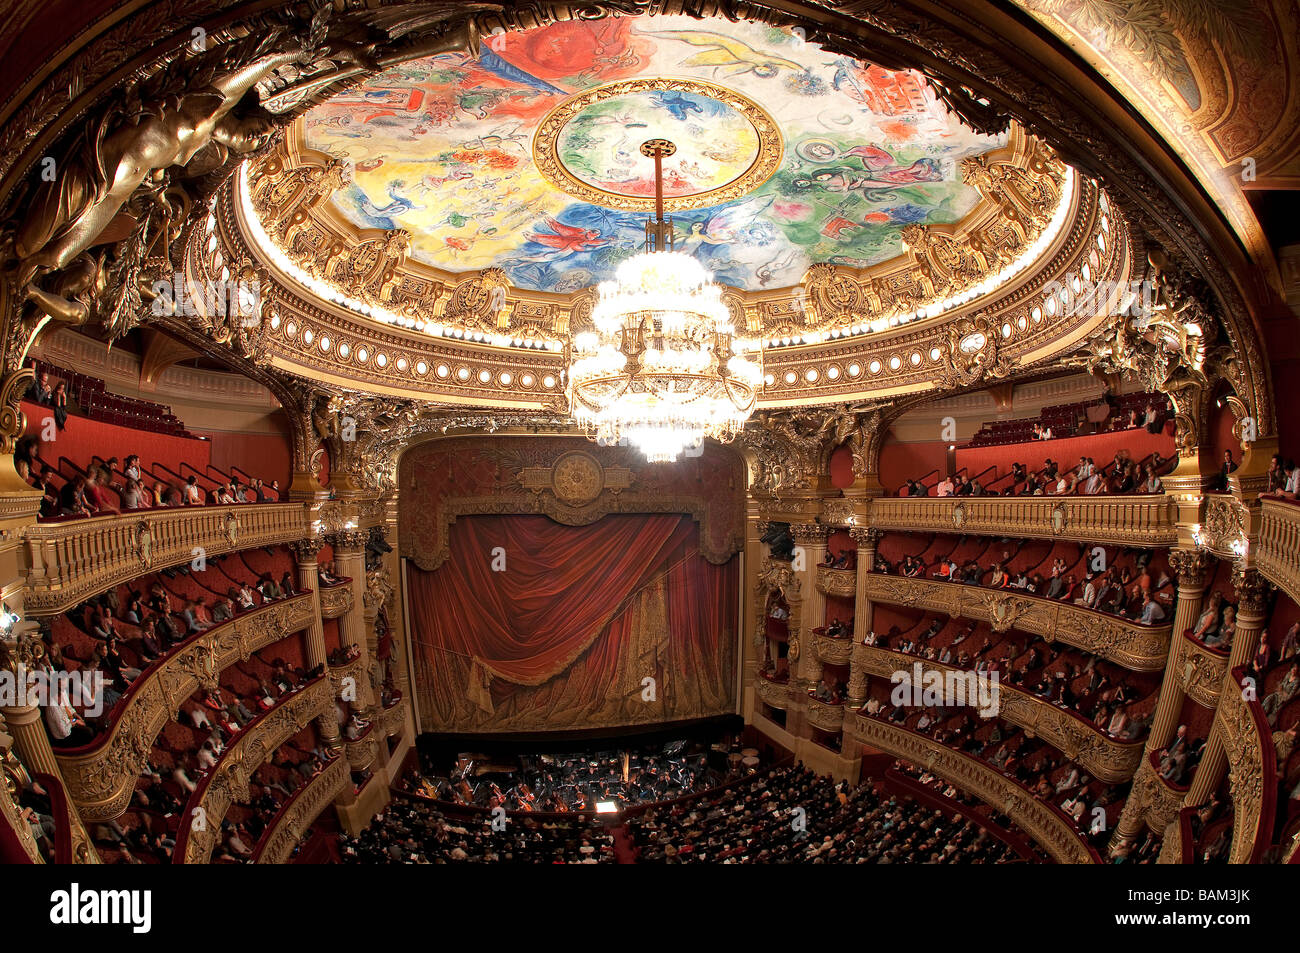 France, Paris, Garnier opera house, the auditorium and the ceiling painted by Chagall - Stock Image